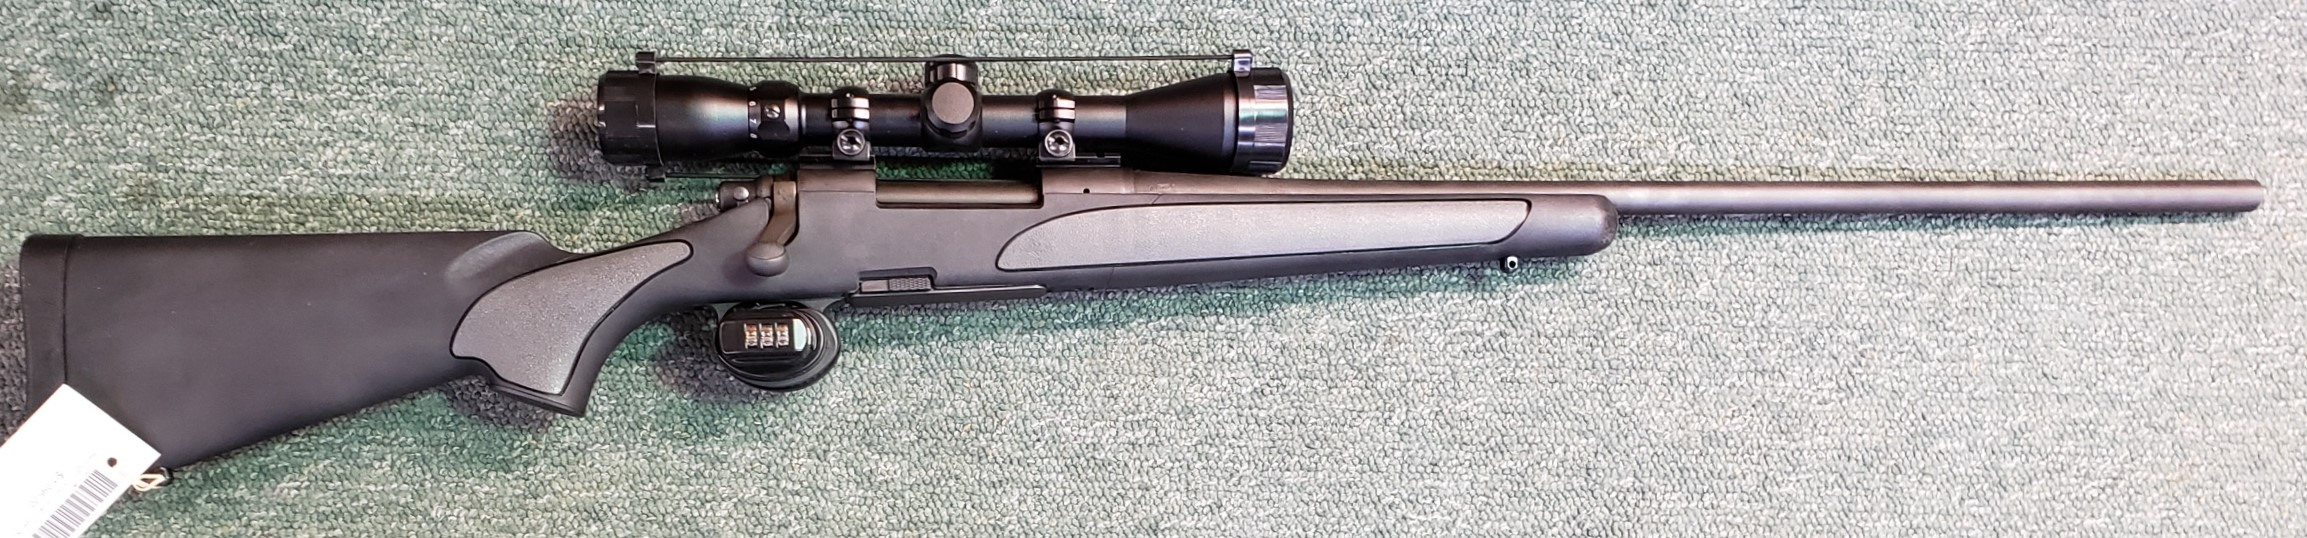 Remington SPS 30-06 Scope Package (no box)